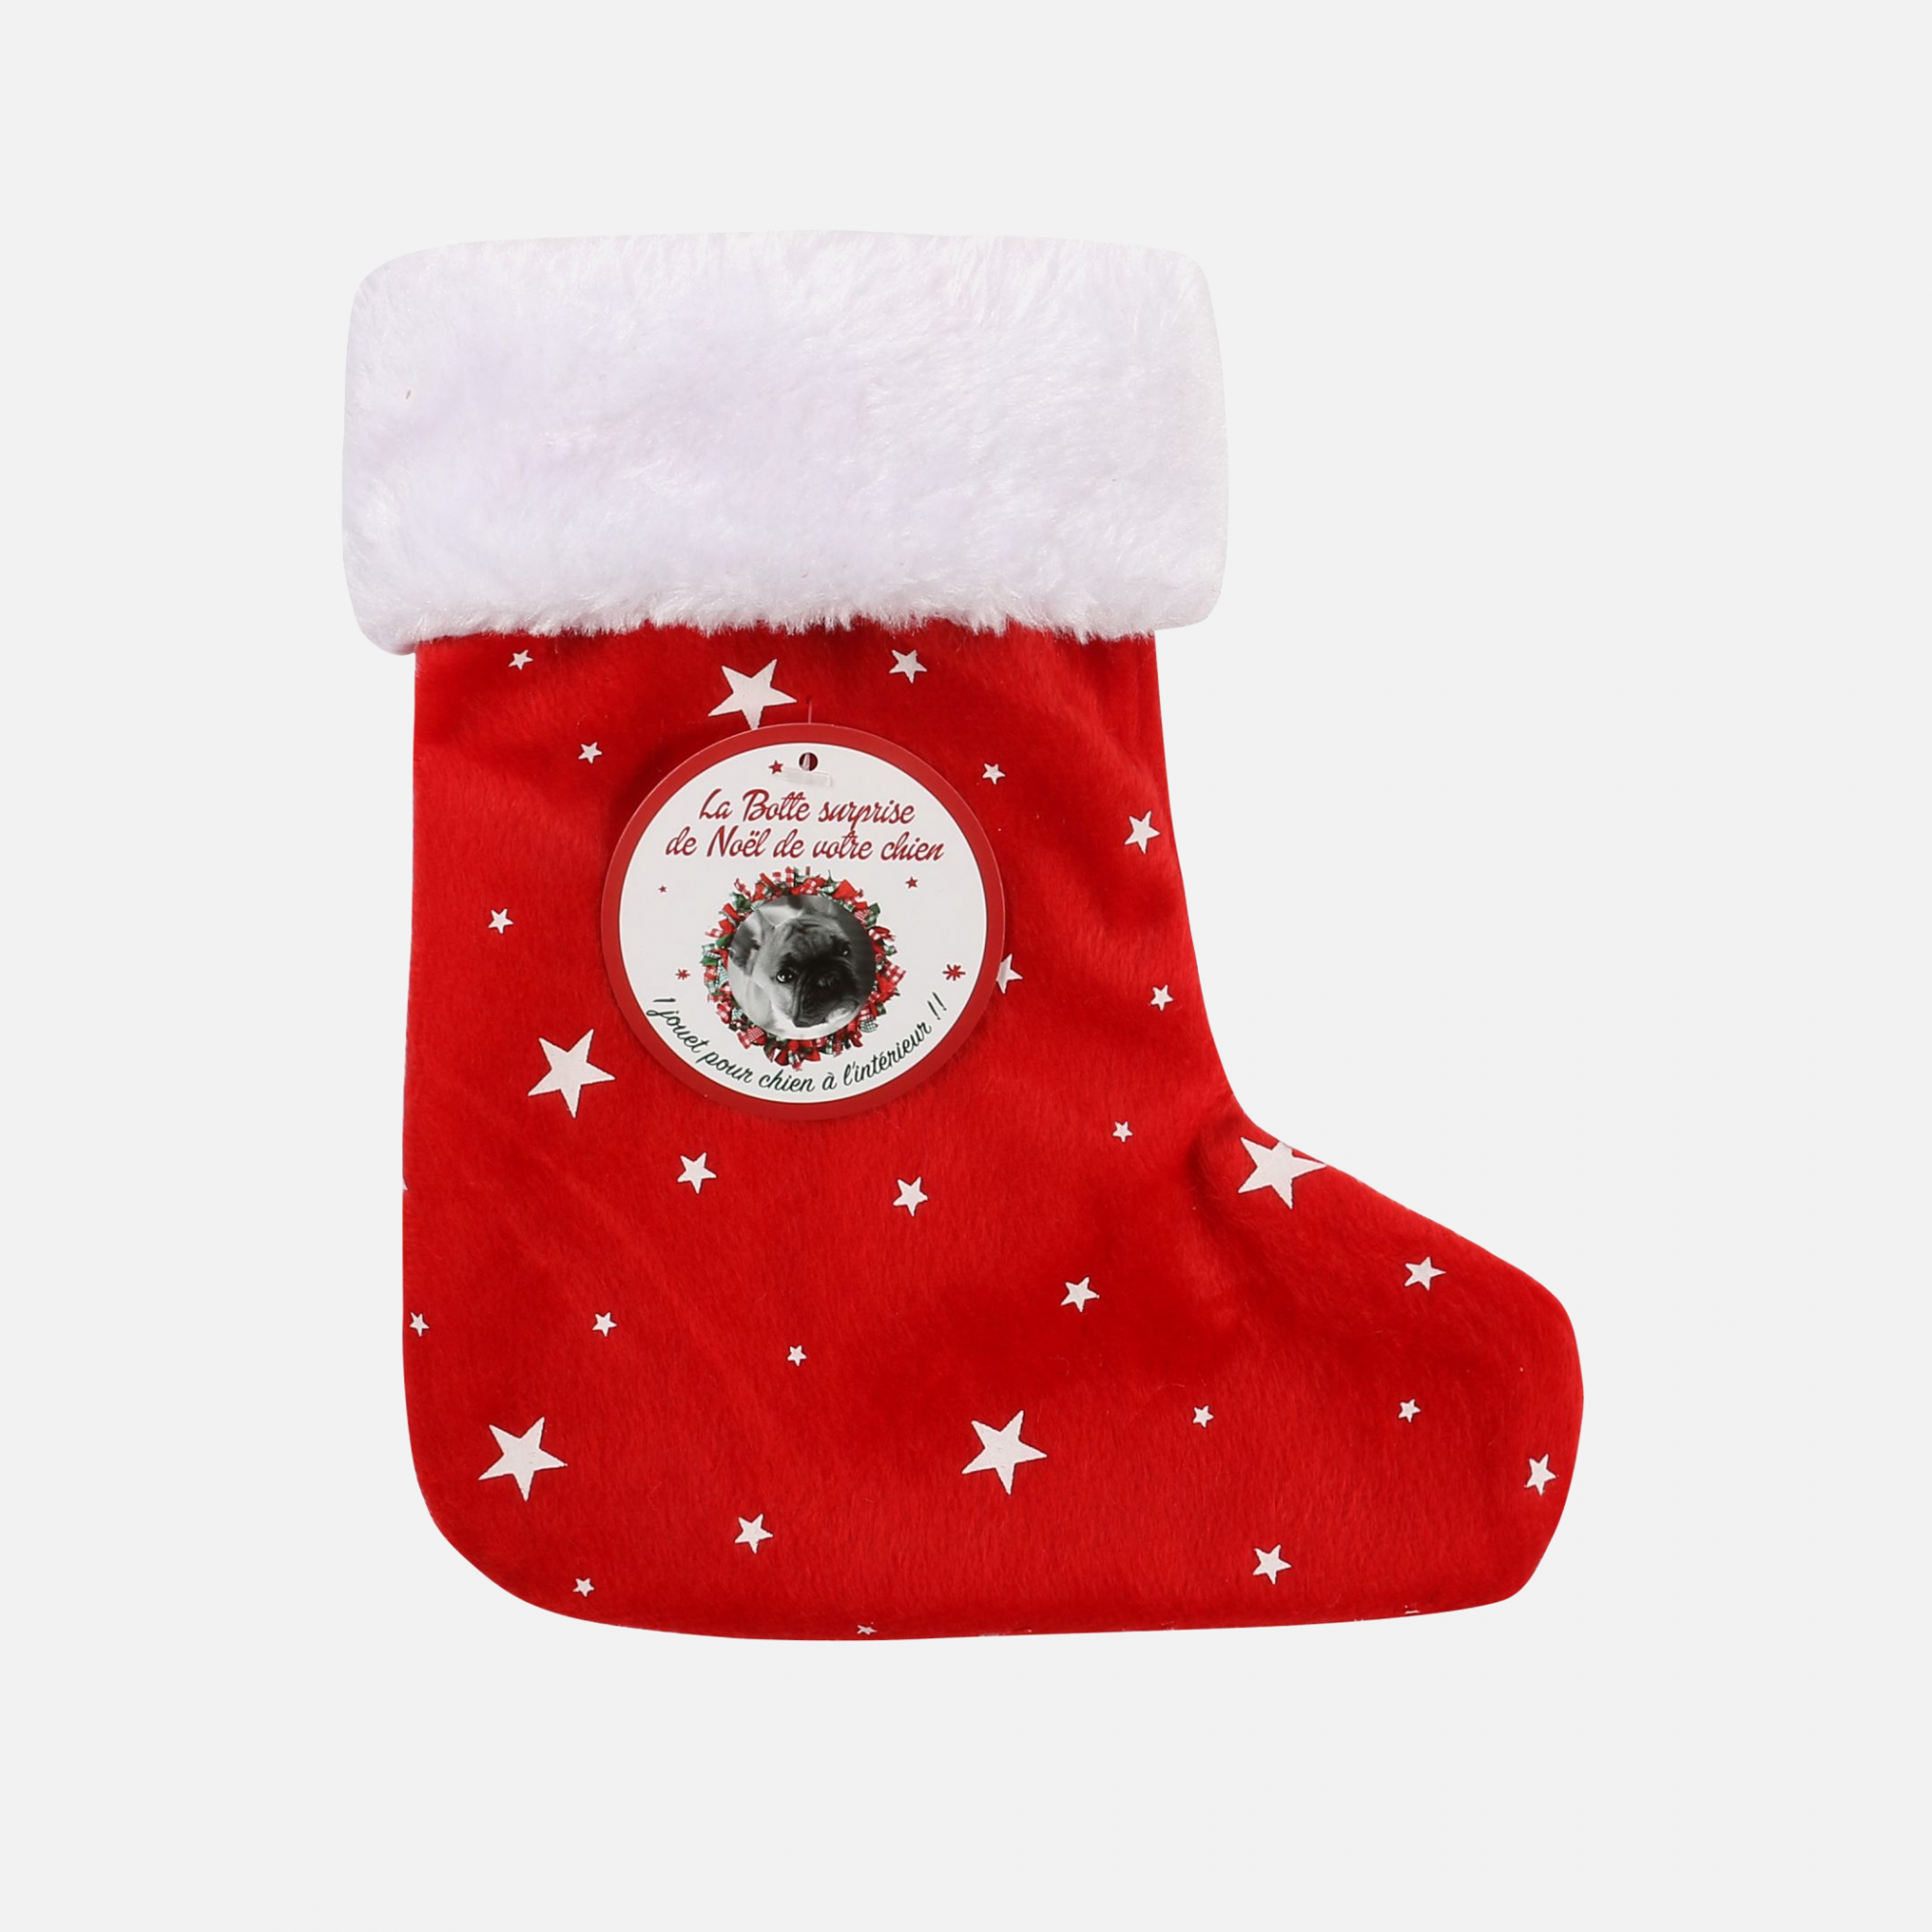 Botte surprise chien de noel par wouapy